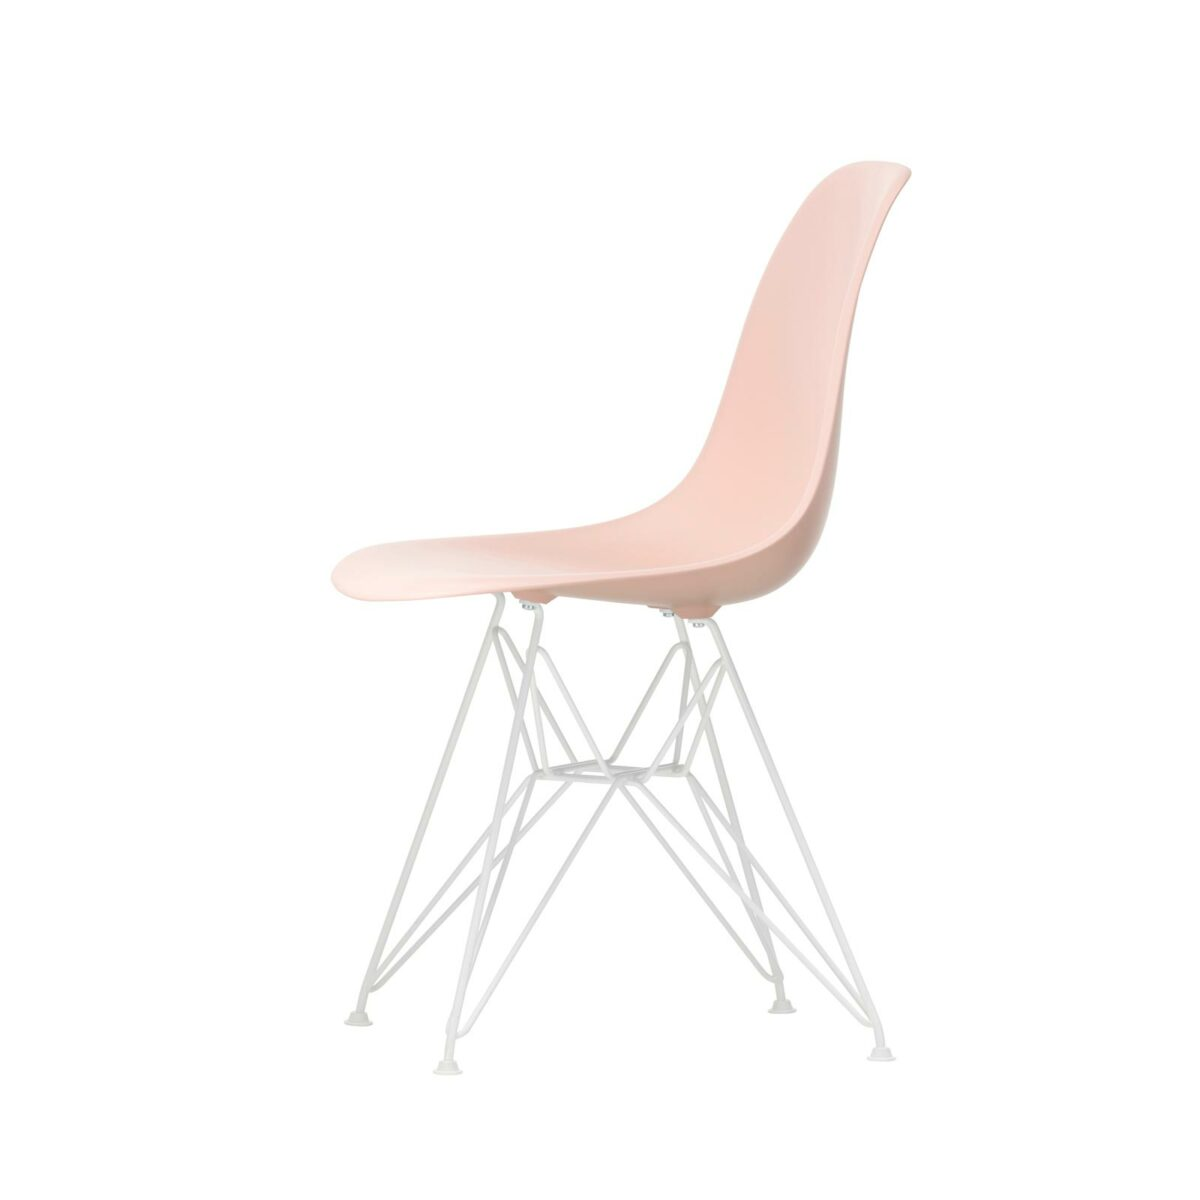 3034964 Eames Plastic Side Chair DSR 41 pale rose 04 white powder coated left master